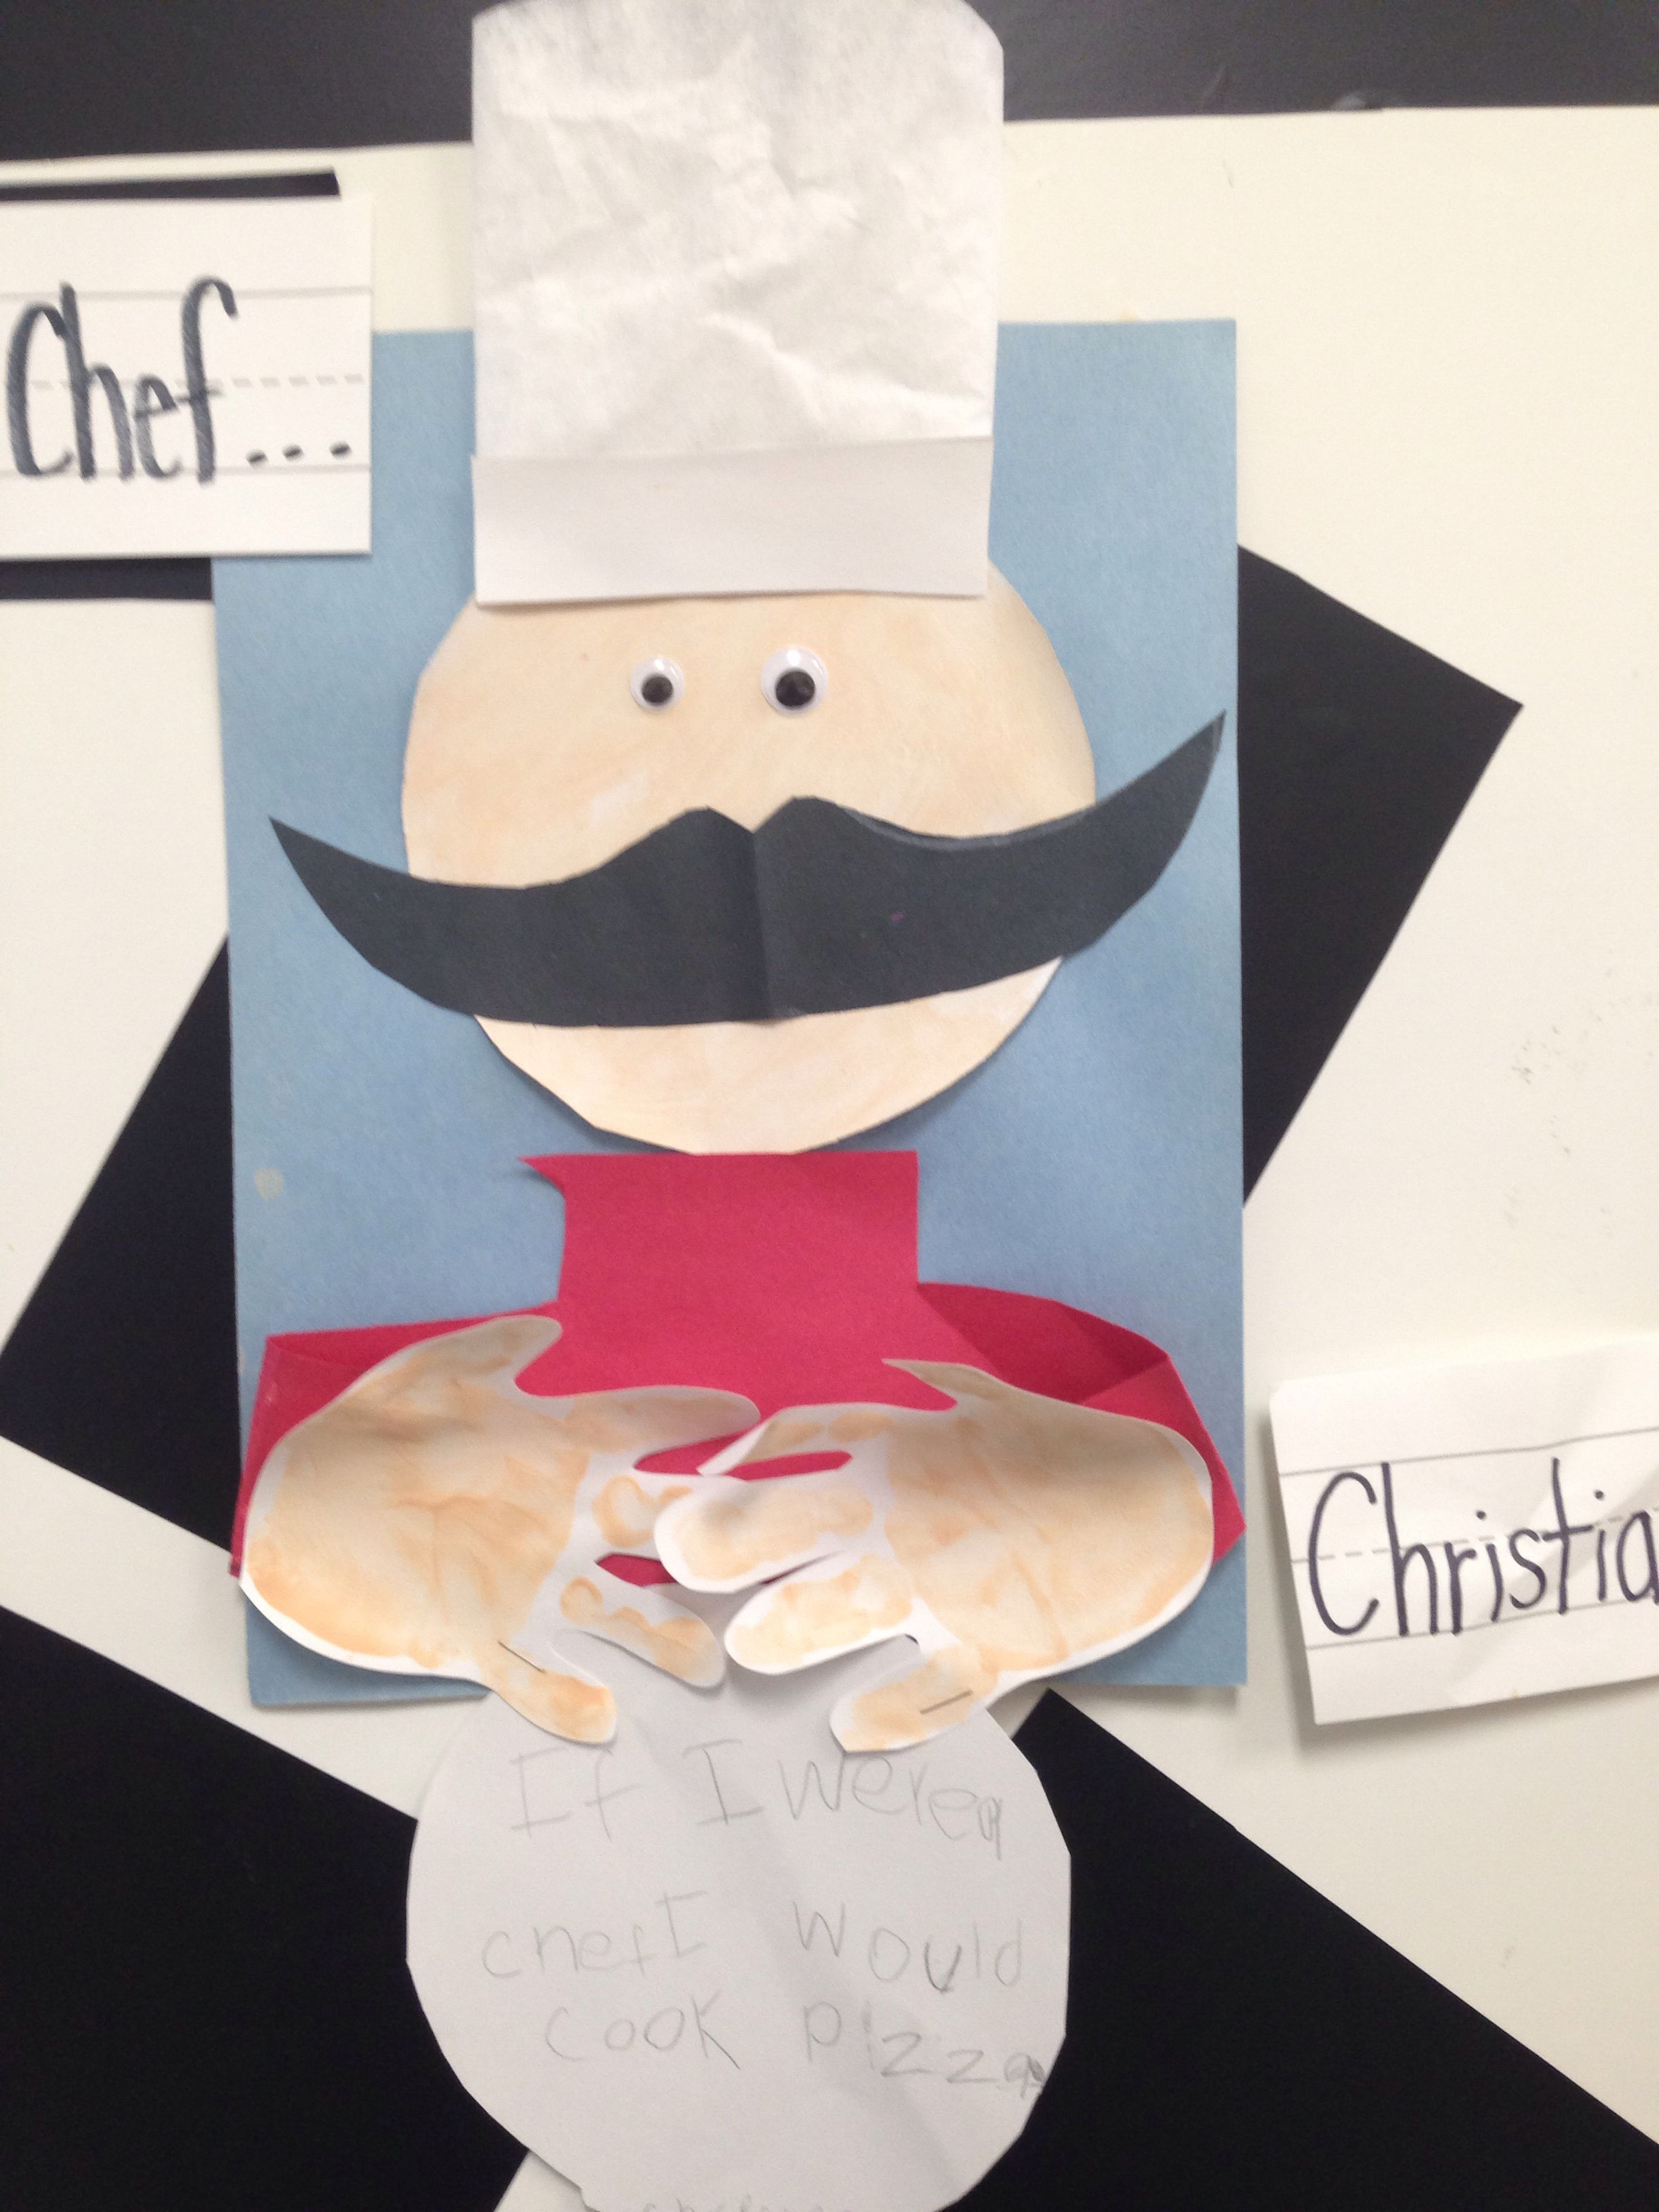 Occupations Prek Preschool Craft If I Were A Chef I Would Cook Pre K Art Project For